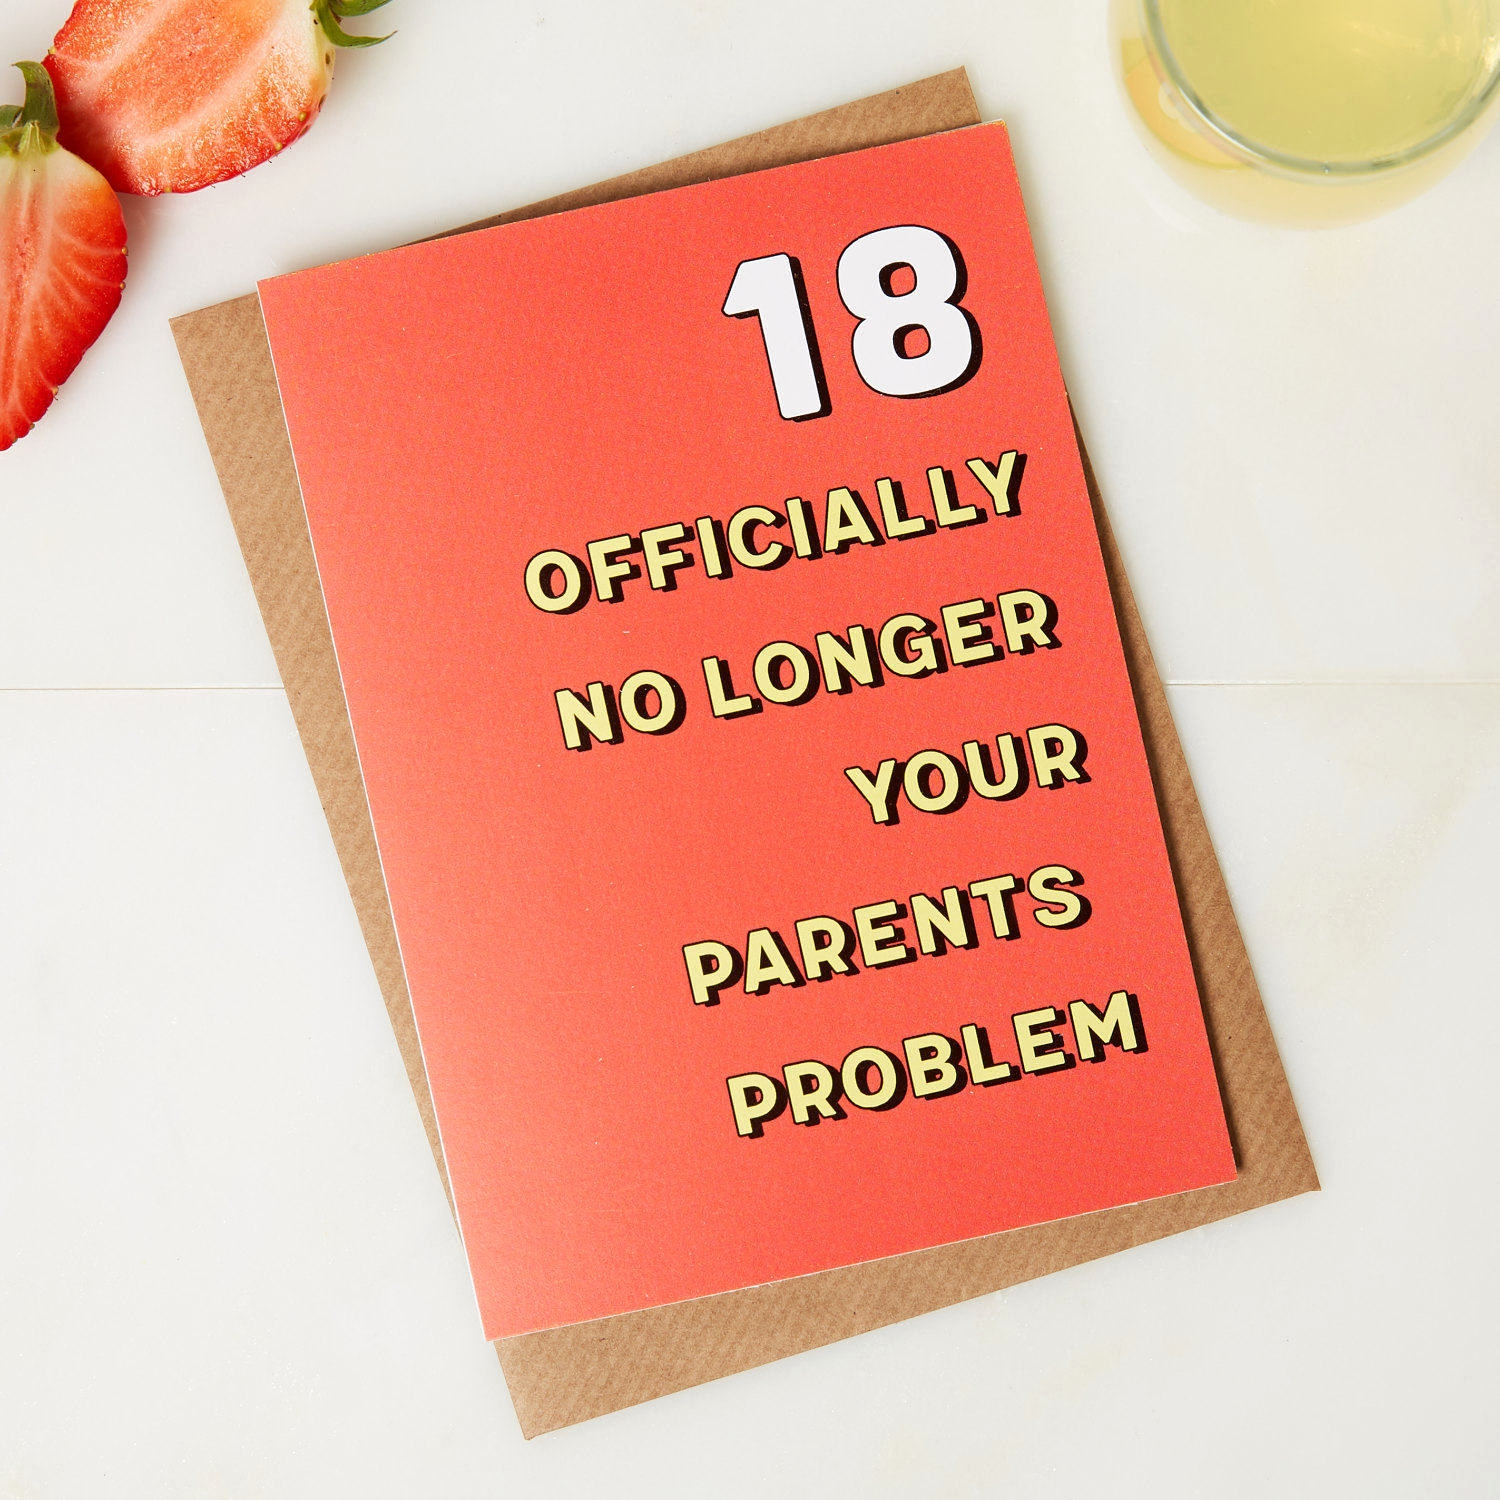 birthday card ideas for 18 year olds ; 18-year-old-birthday-cards-new-18th-birthday-card-18th-birthday-birthday-card-18-years-of-18-year-old-birthday-cards